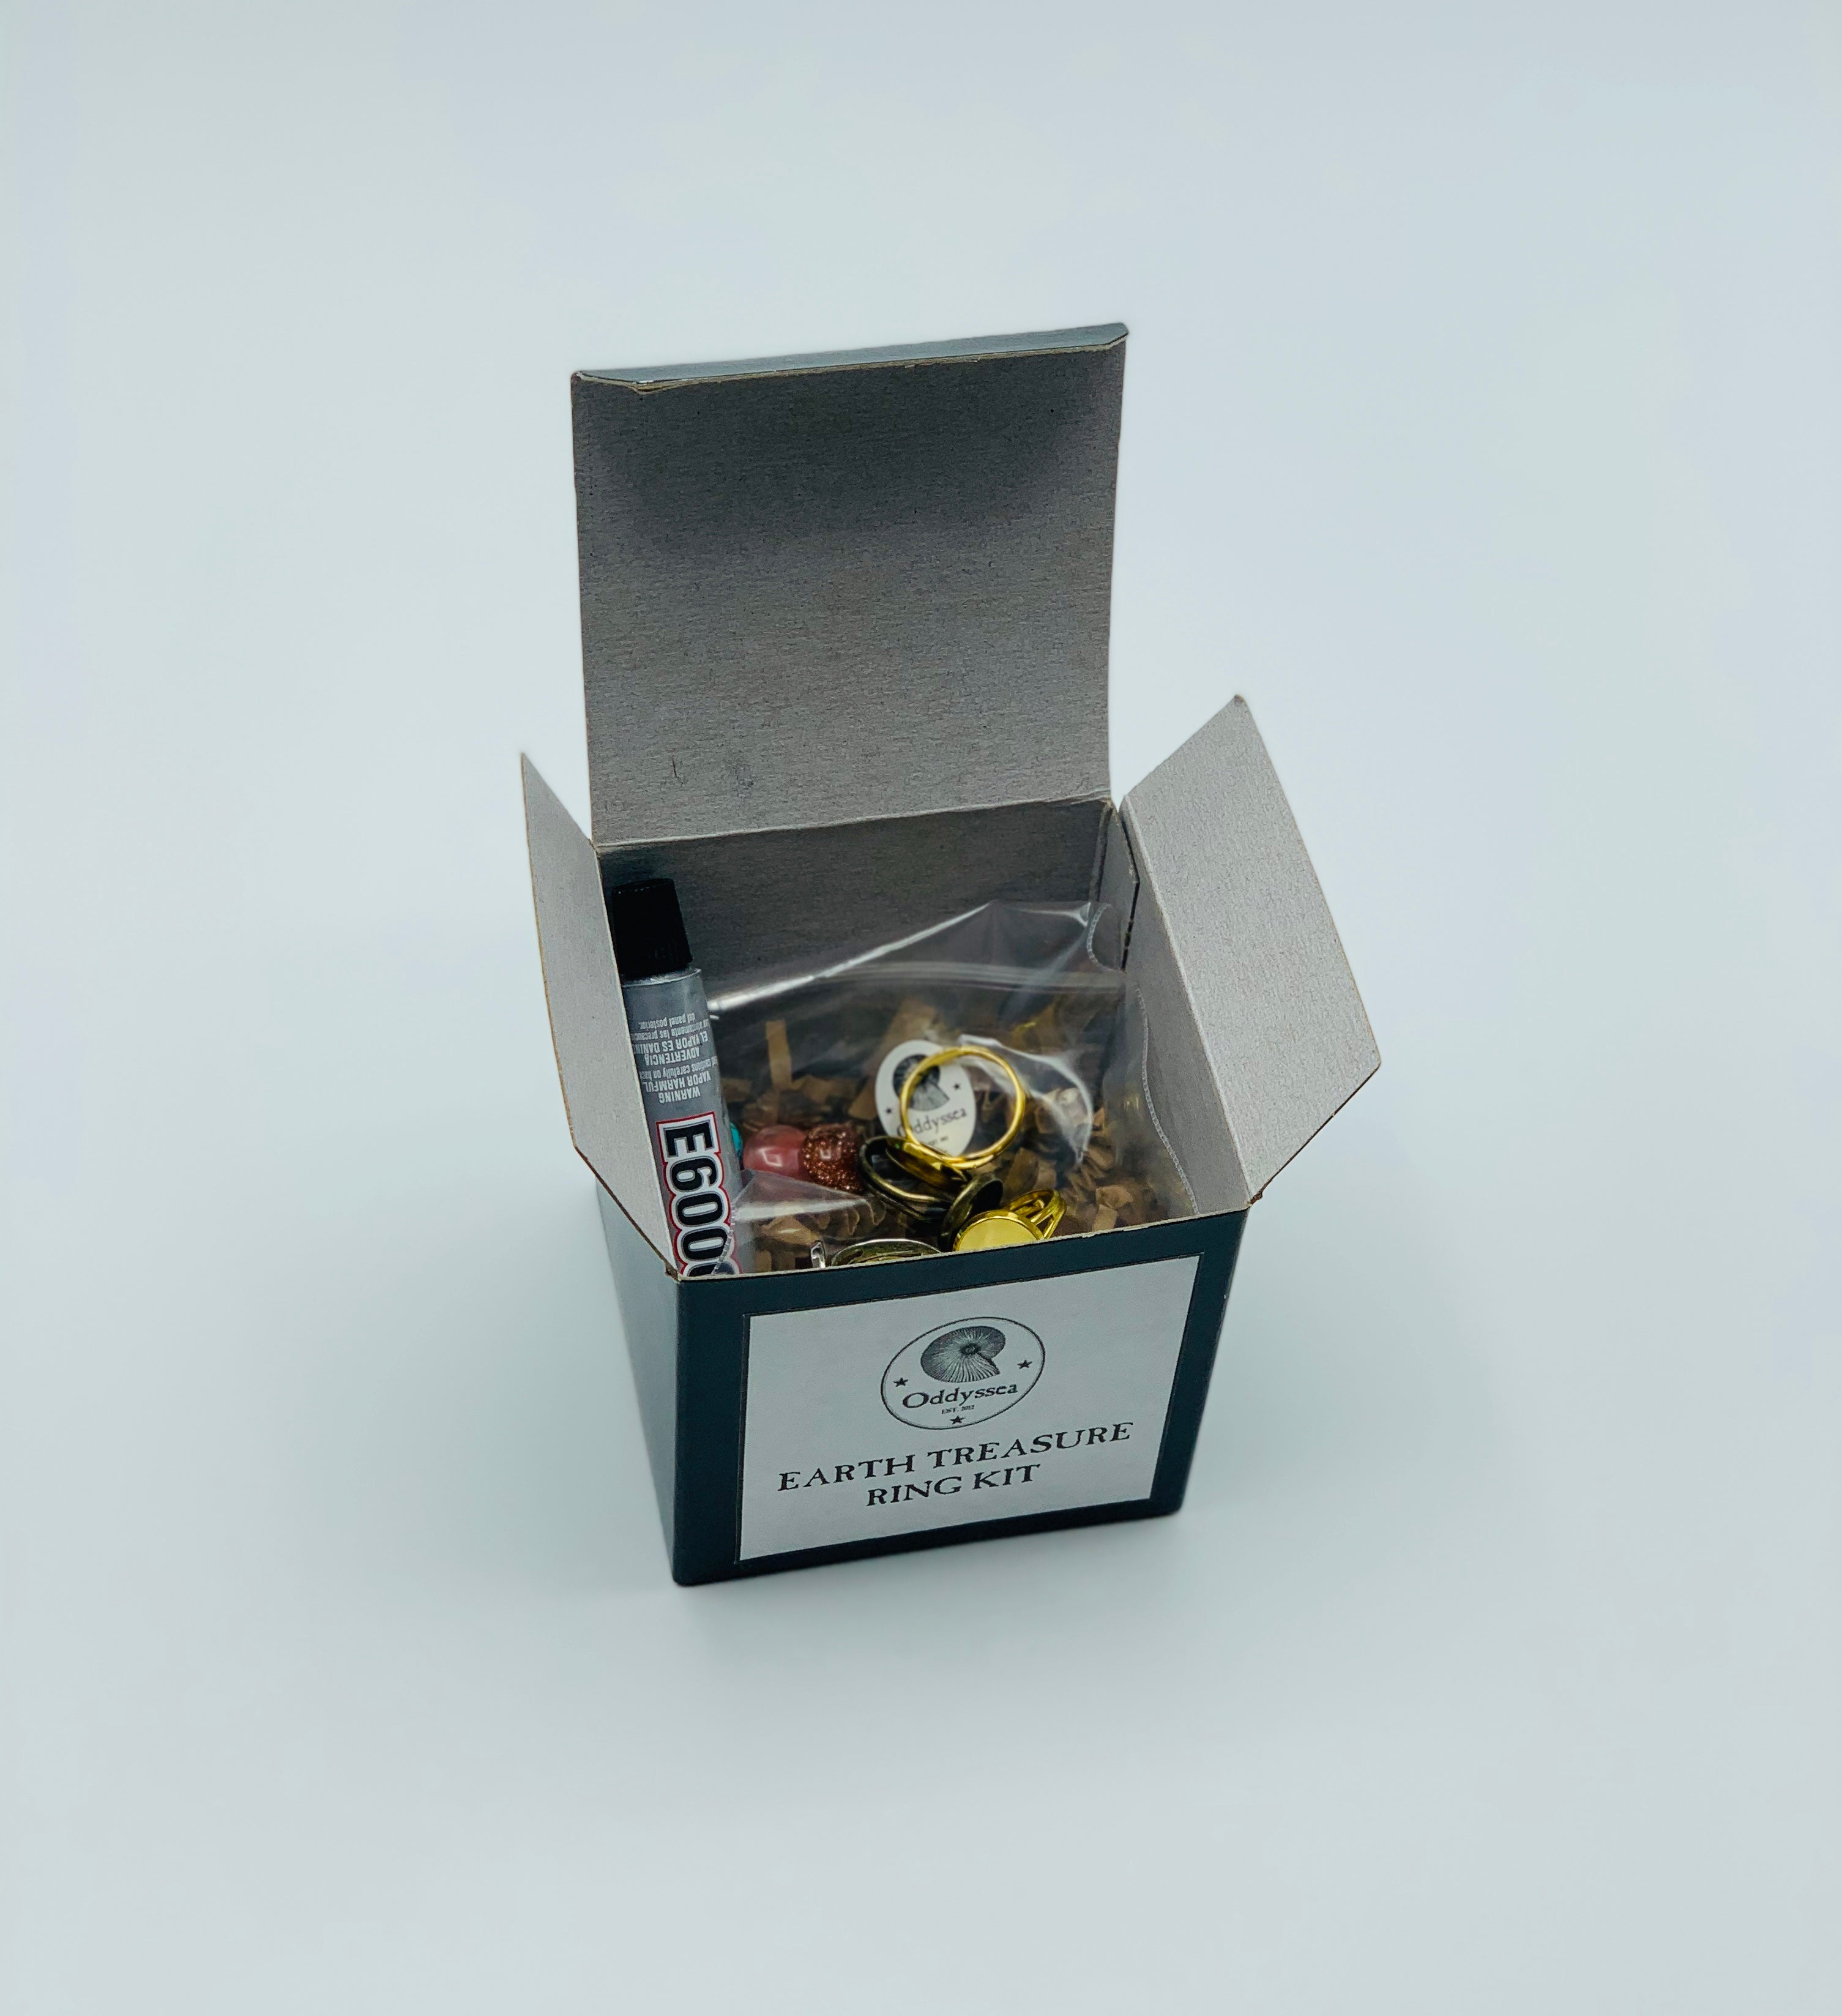 Earth Treasure Ring Kit